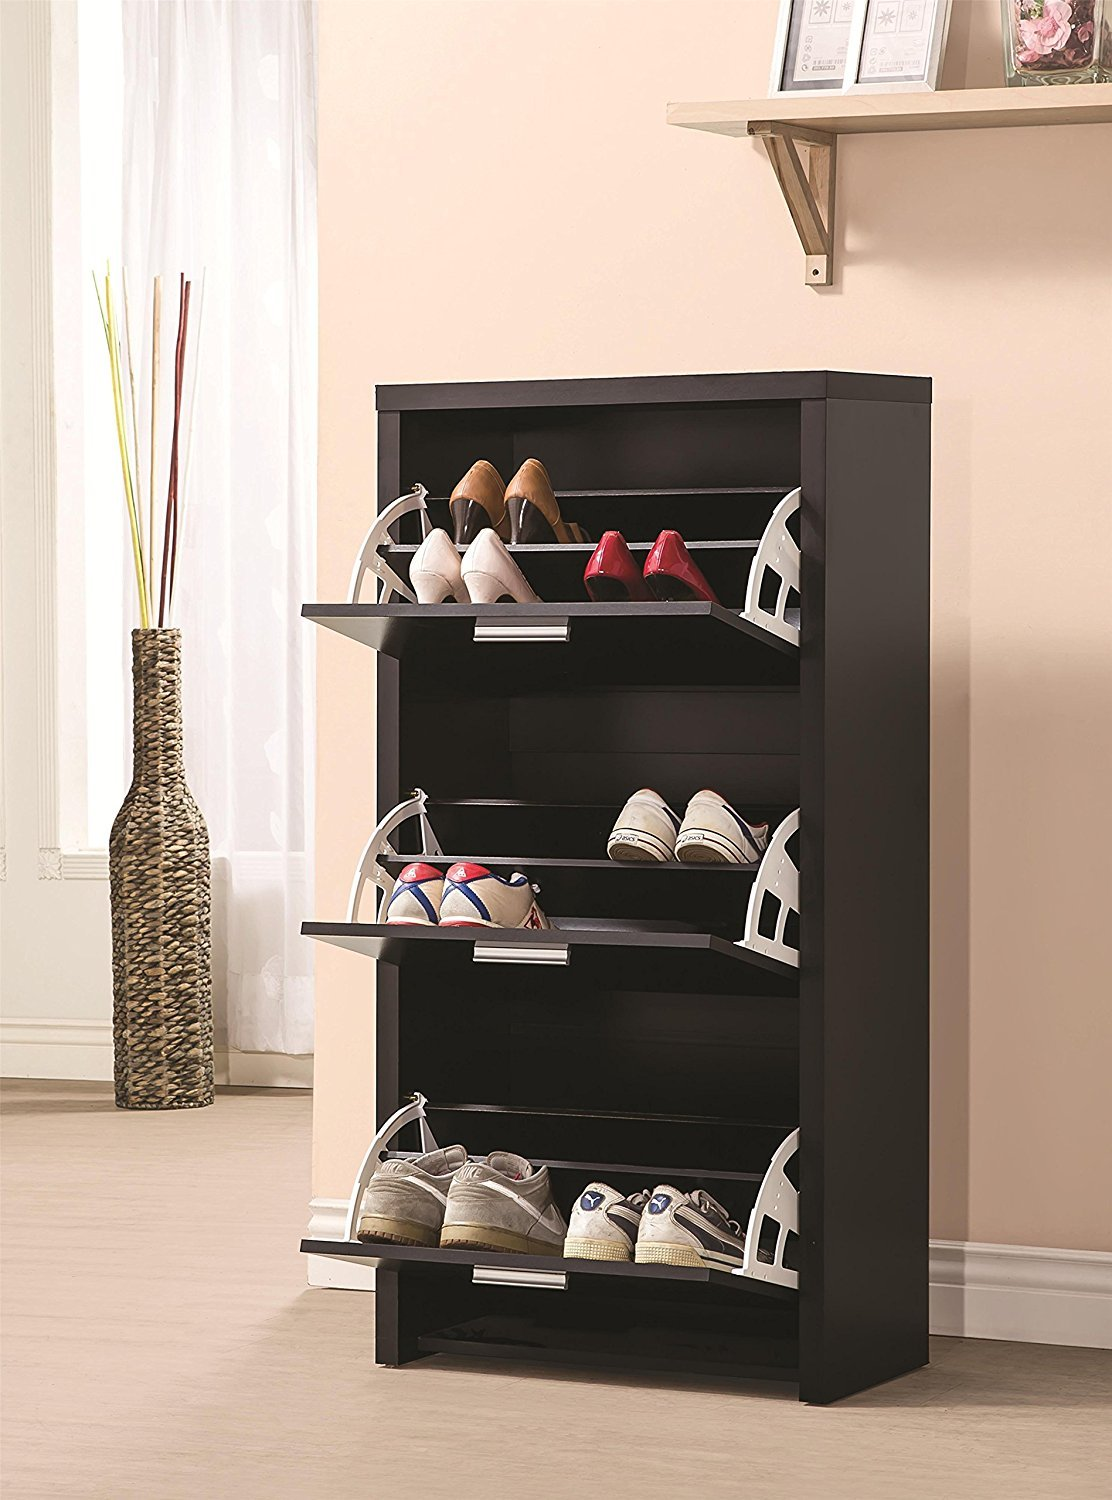 Tilt-out Shoe Cabinet Pros and Cons